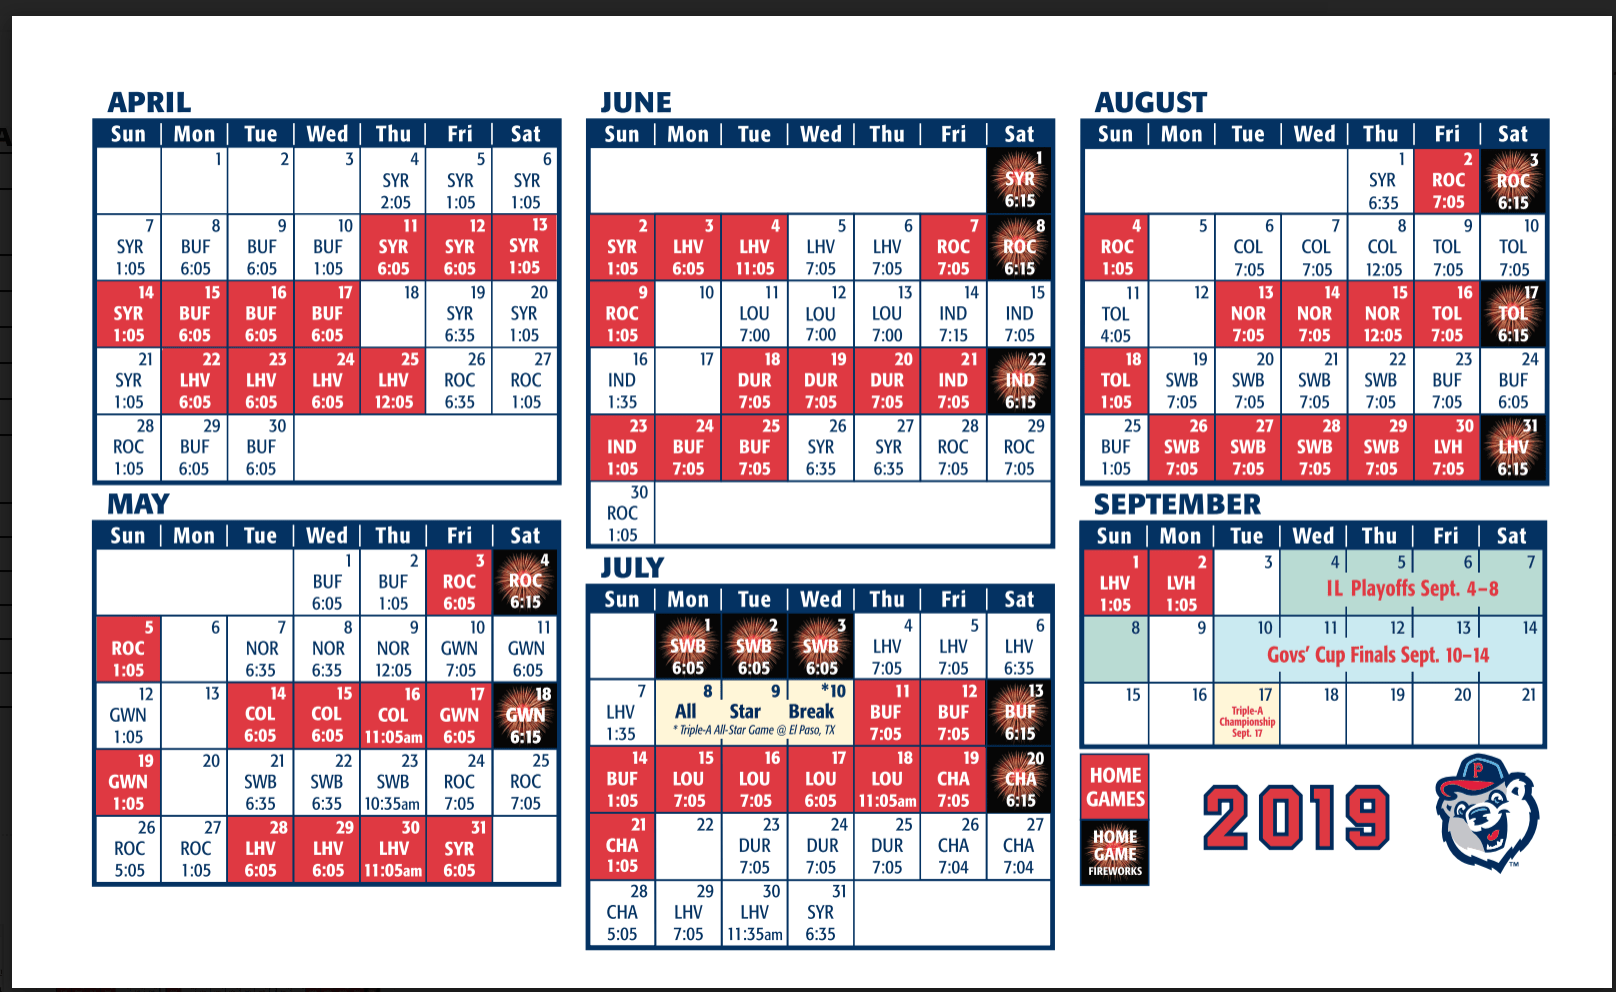 image relating to Red Sox Schedule Printable titled PawSox Program Introduced For 2019 Period